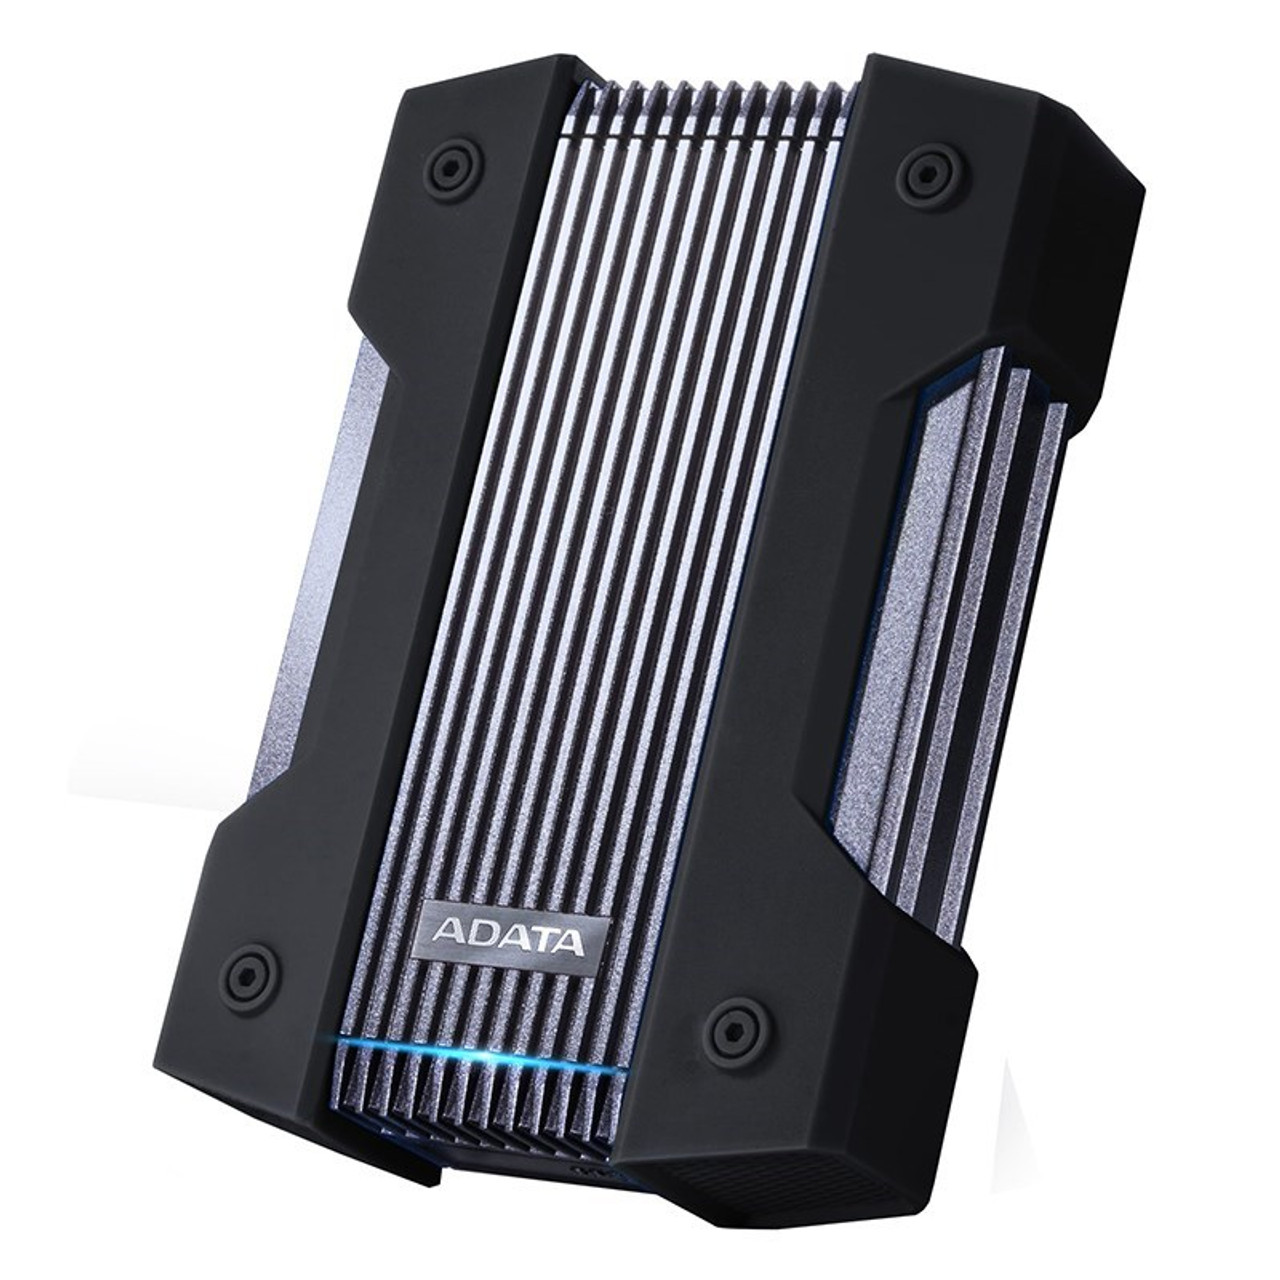 Image for Adata HD830 2TB USB 3.0 Portable External Hard Drive - Black CX Computer Superstore